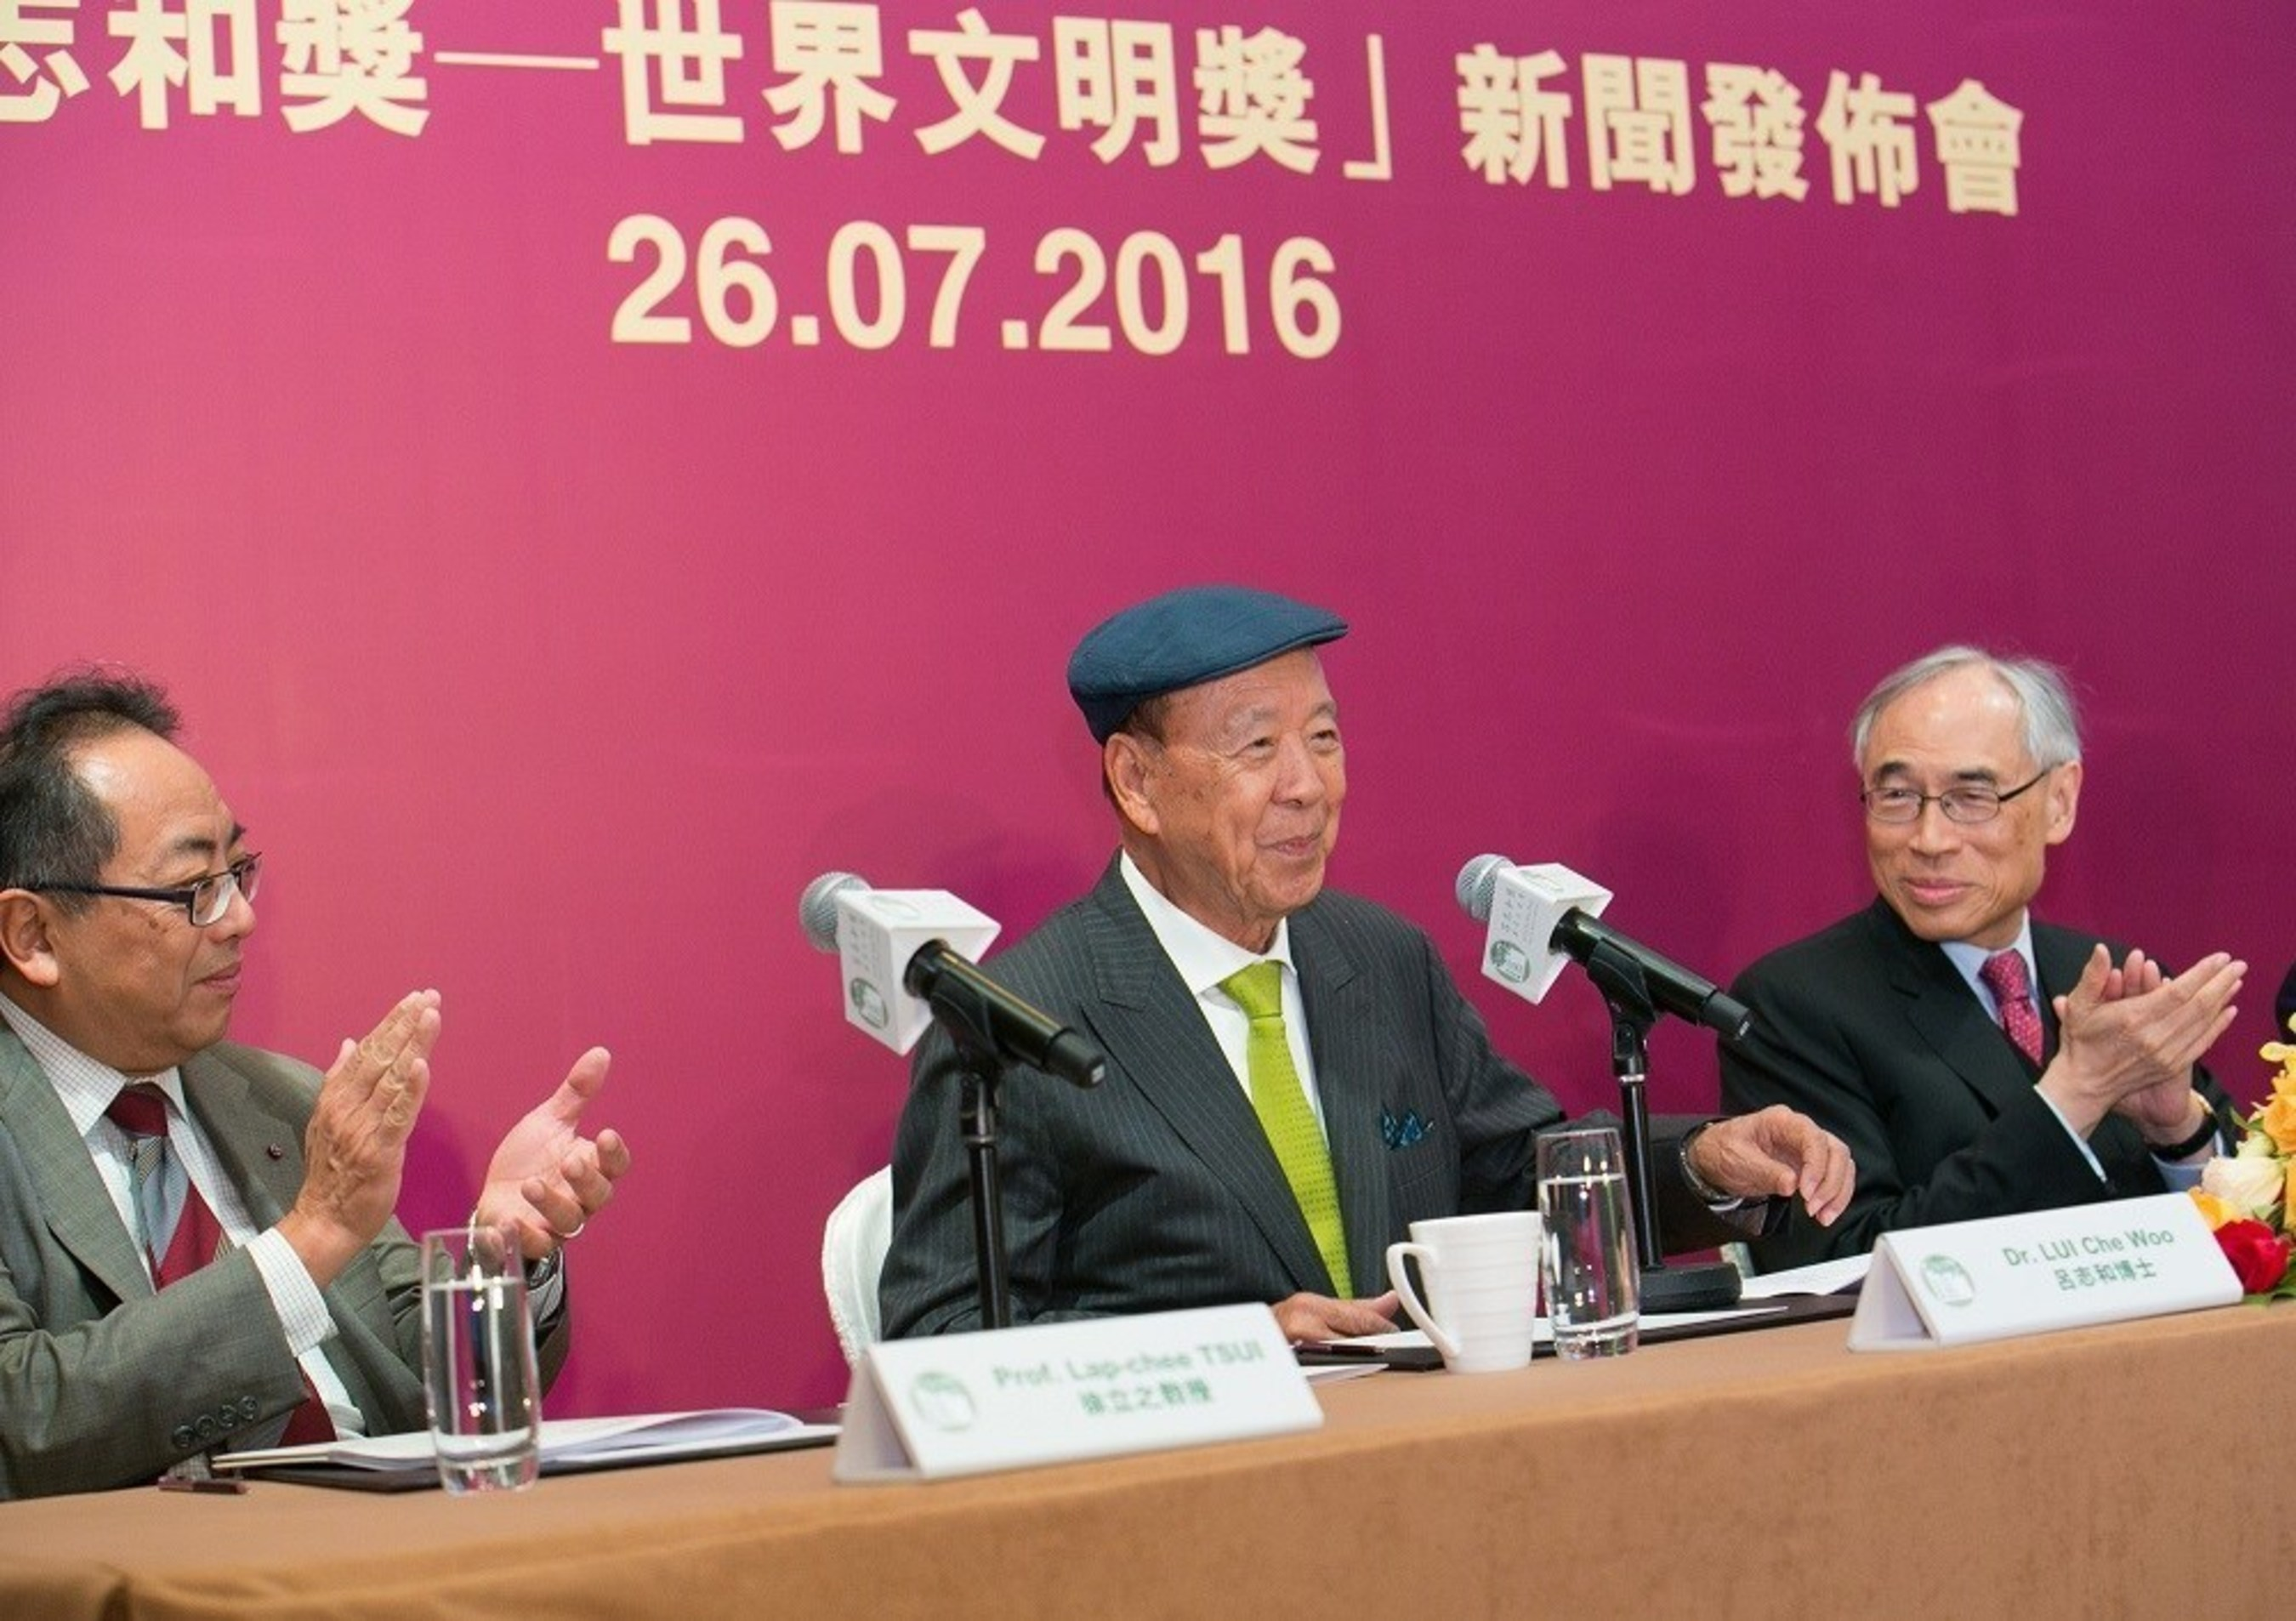 LUI Che Woo Prize – Prize for World Civilisation was established with the aim to promote world peace, mutual respect and support.